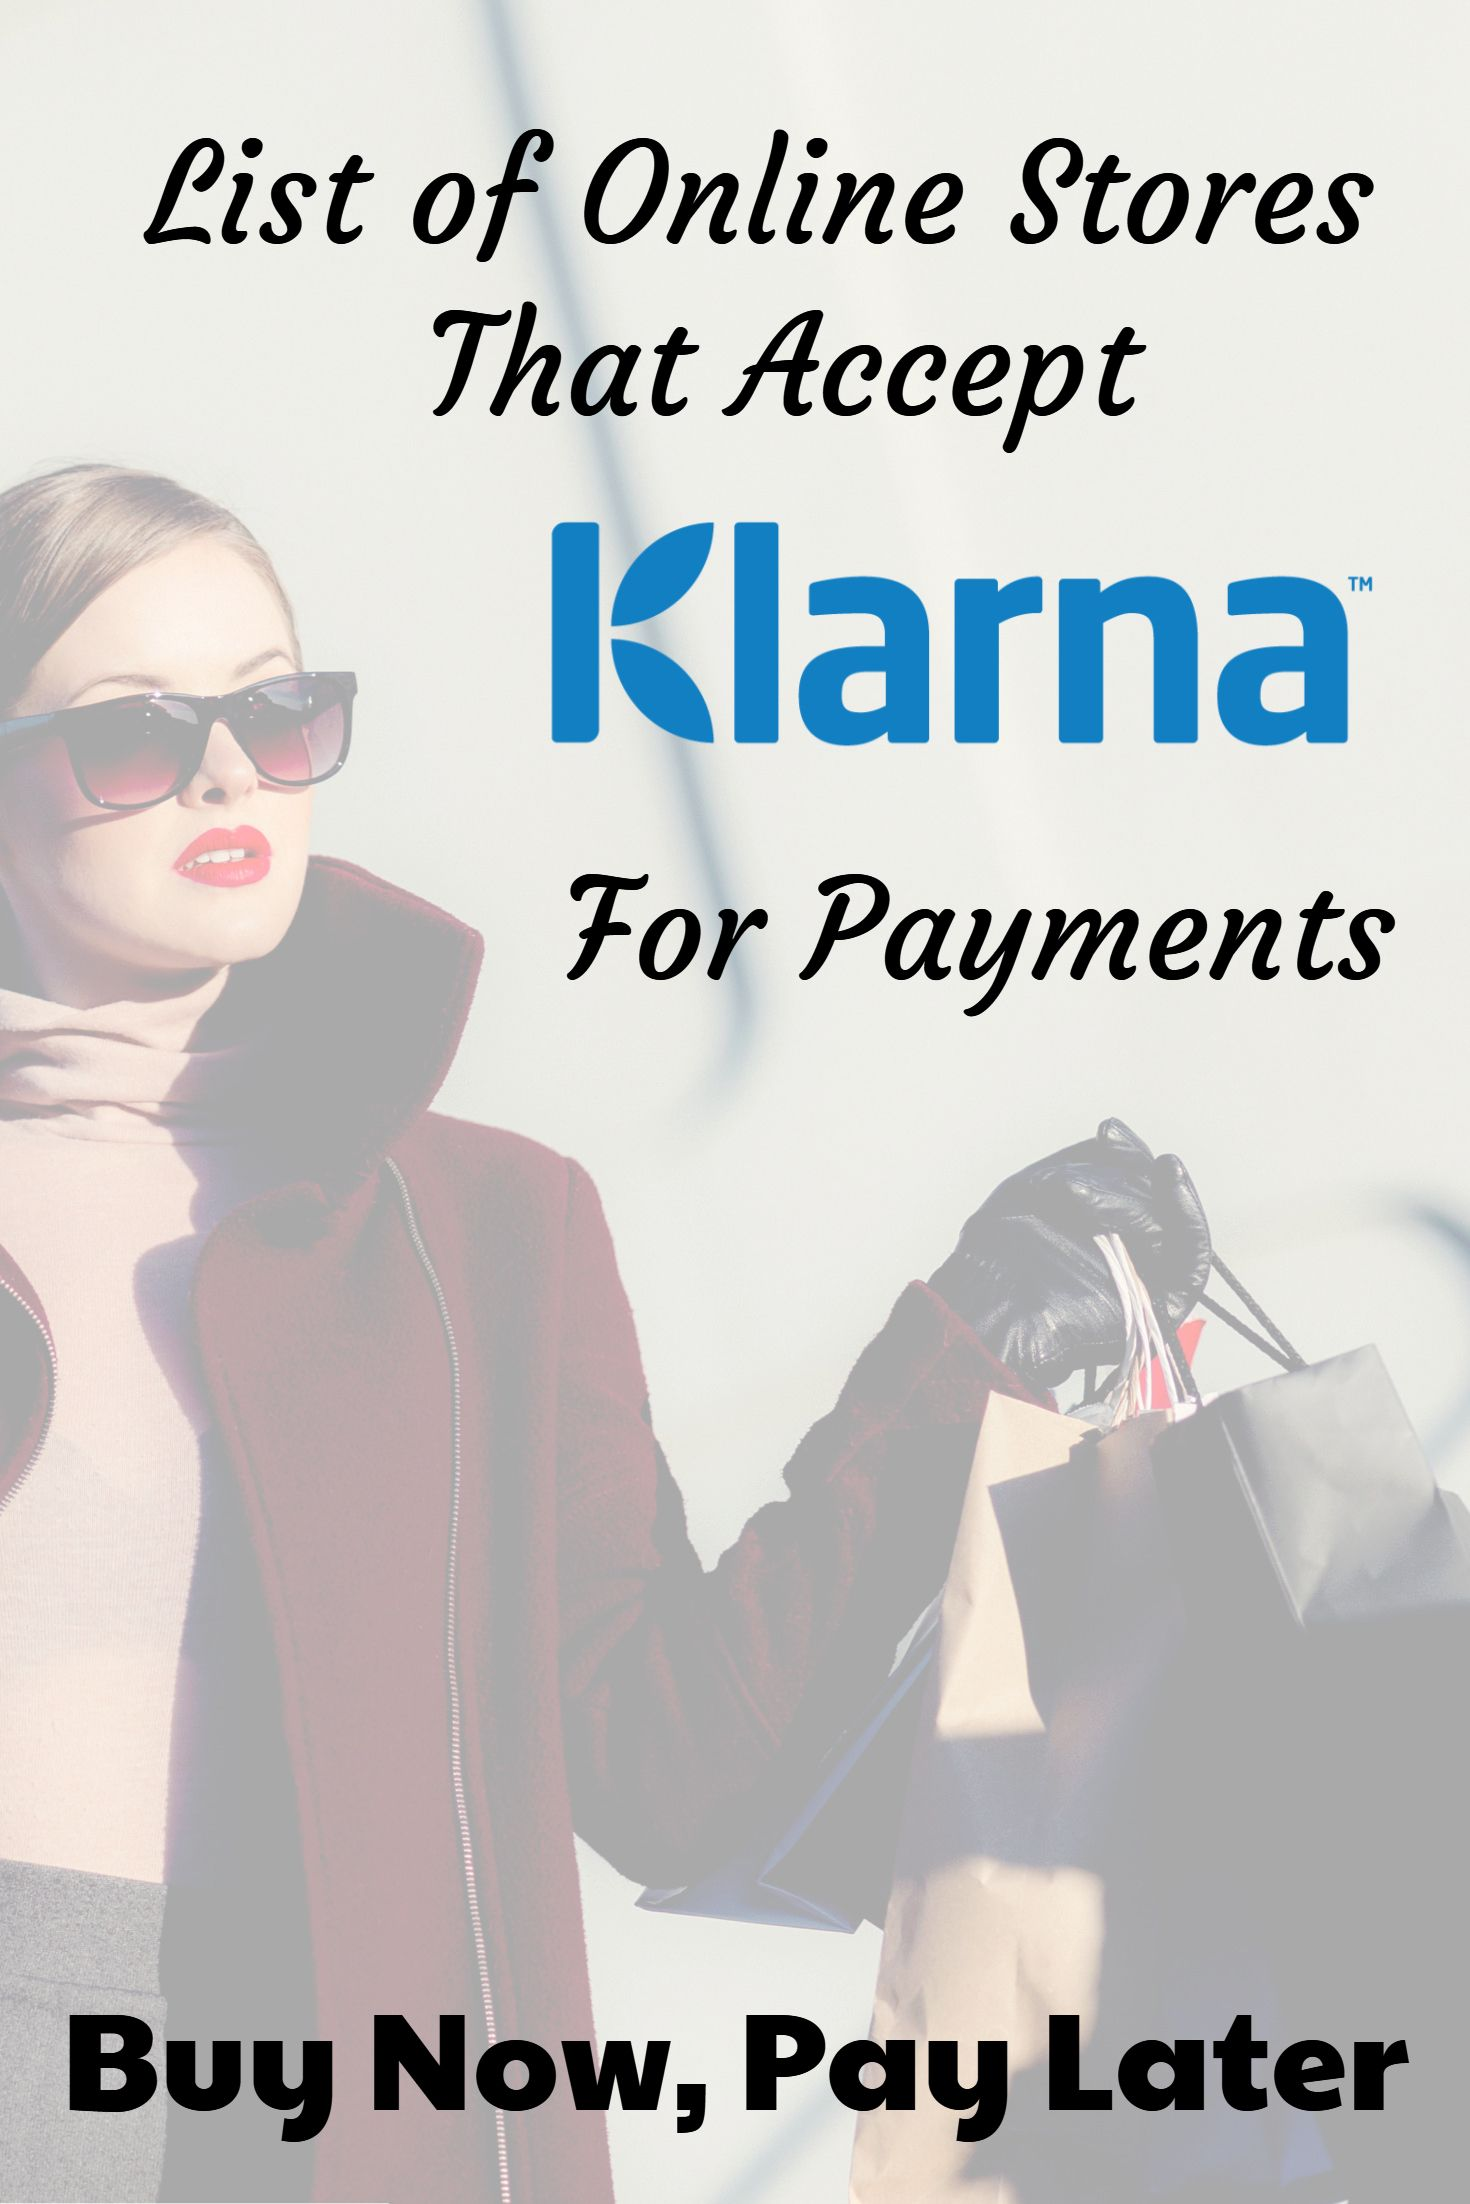 Online Stores That Accept Klarna To Buy Now, Pay Later ...